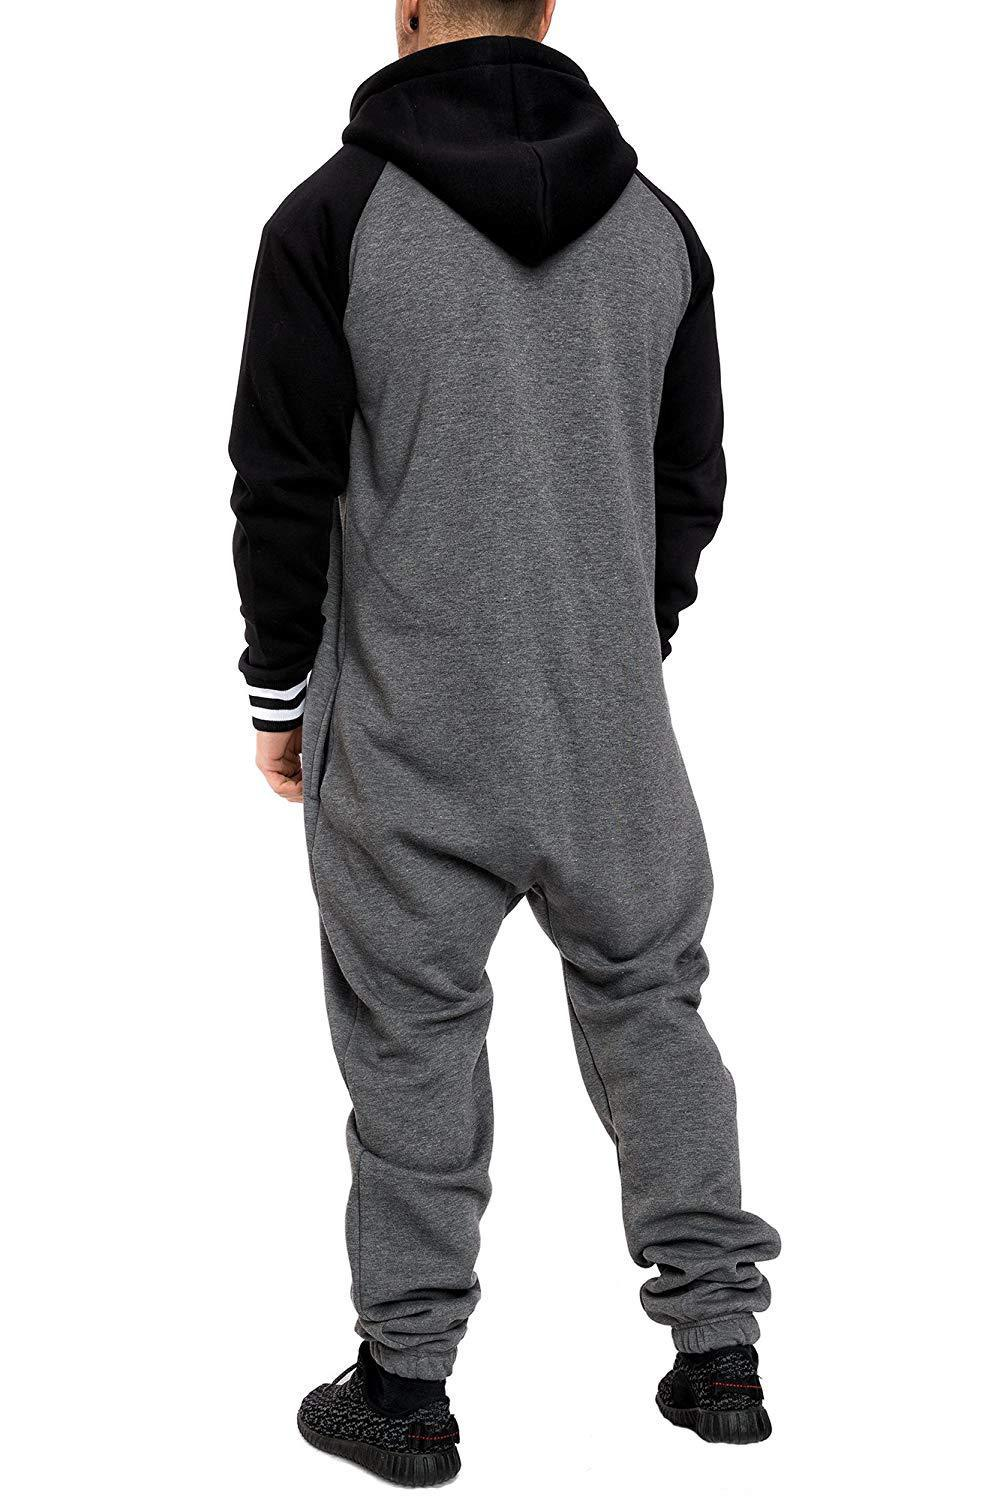 Casual Autumn Hooded Tracksuit Jumpsuit Long Pants Romper For Male Mens Fleece warm Overalls Sweatshirts Male Streetwear X9126 30